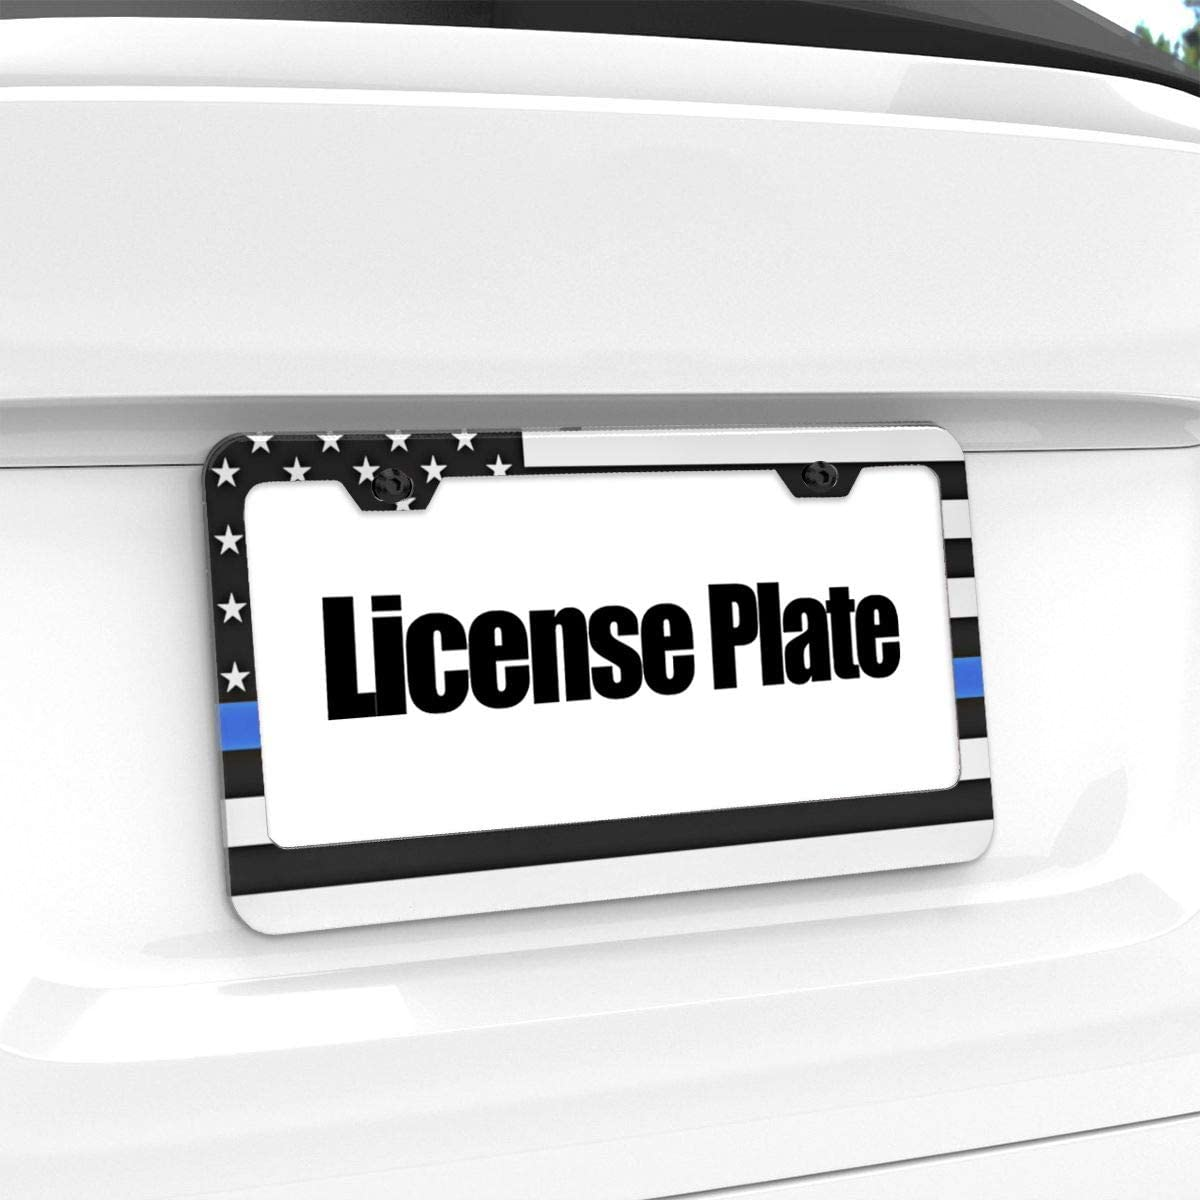 DZGlobal Personalized License Plate Thin Blue Line American Flag Chrome License Plate Frame Funny Novelty License Plate Cover Holder